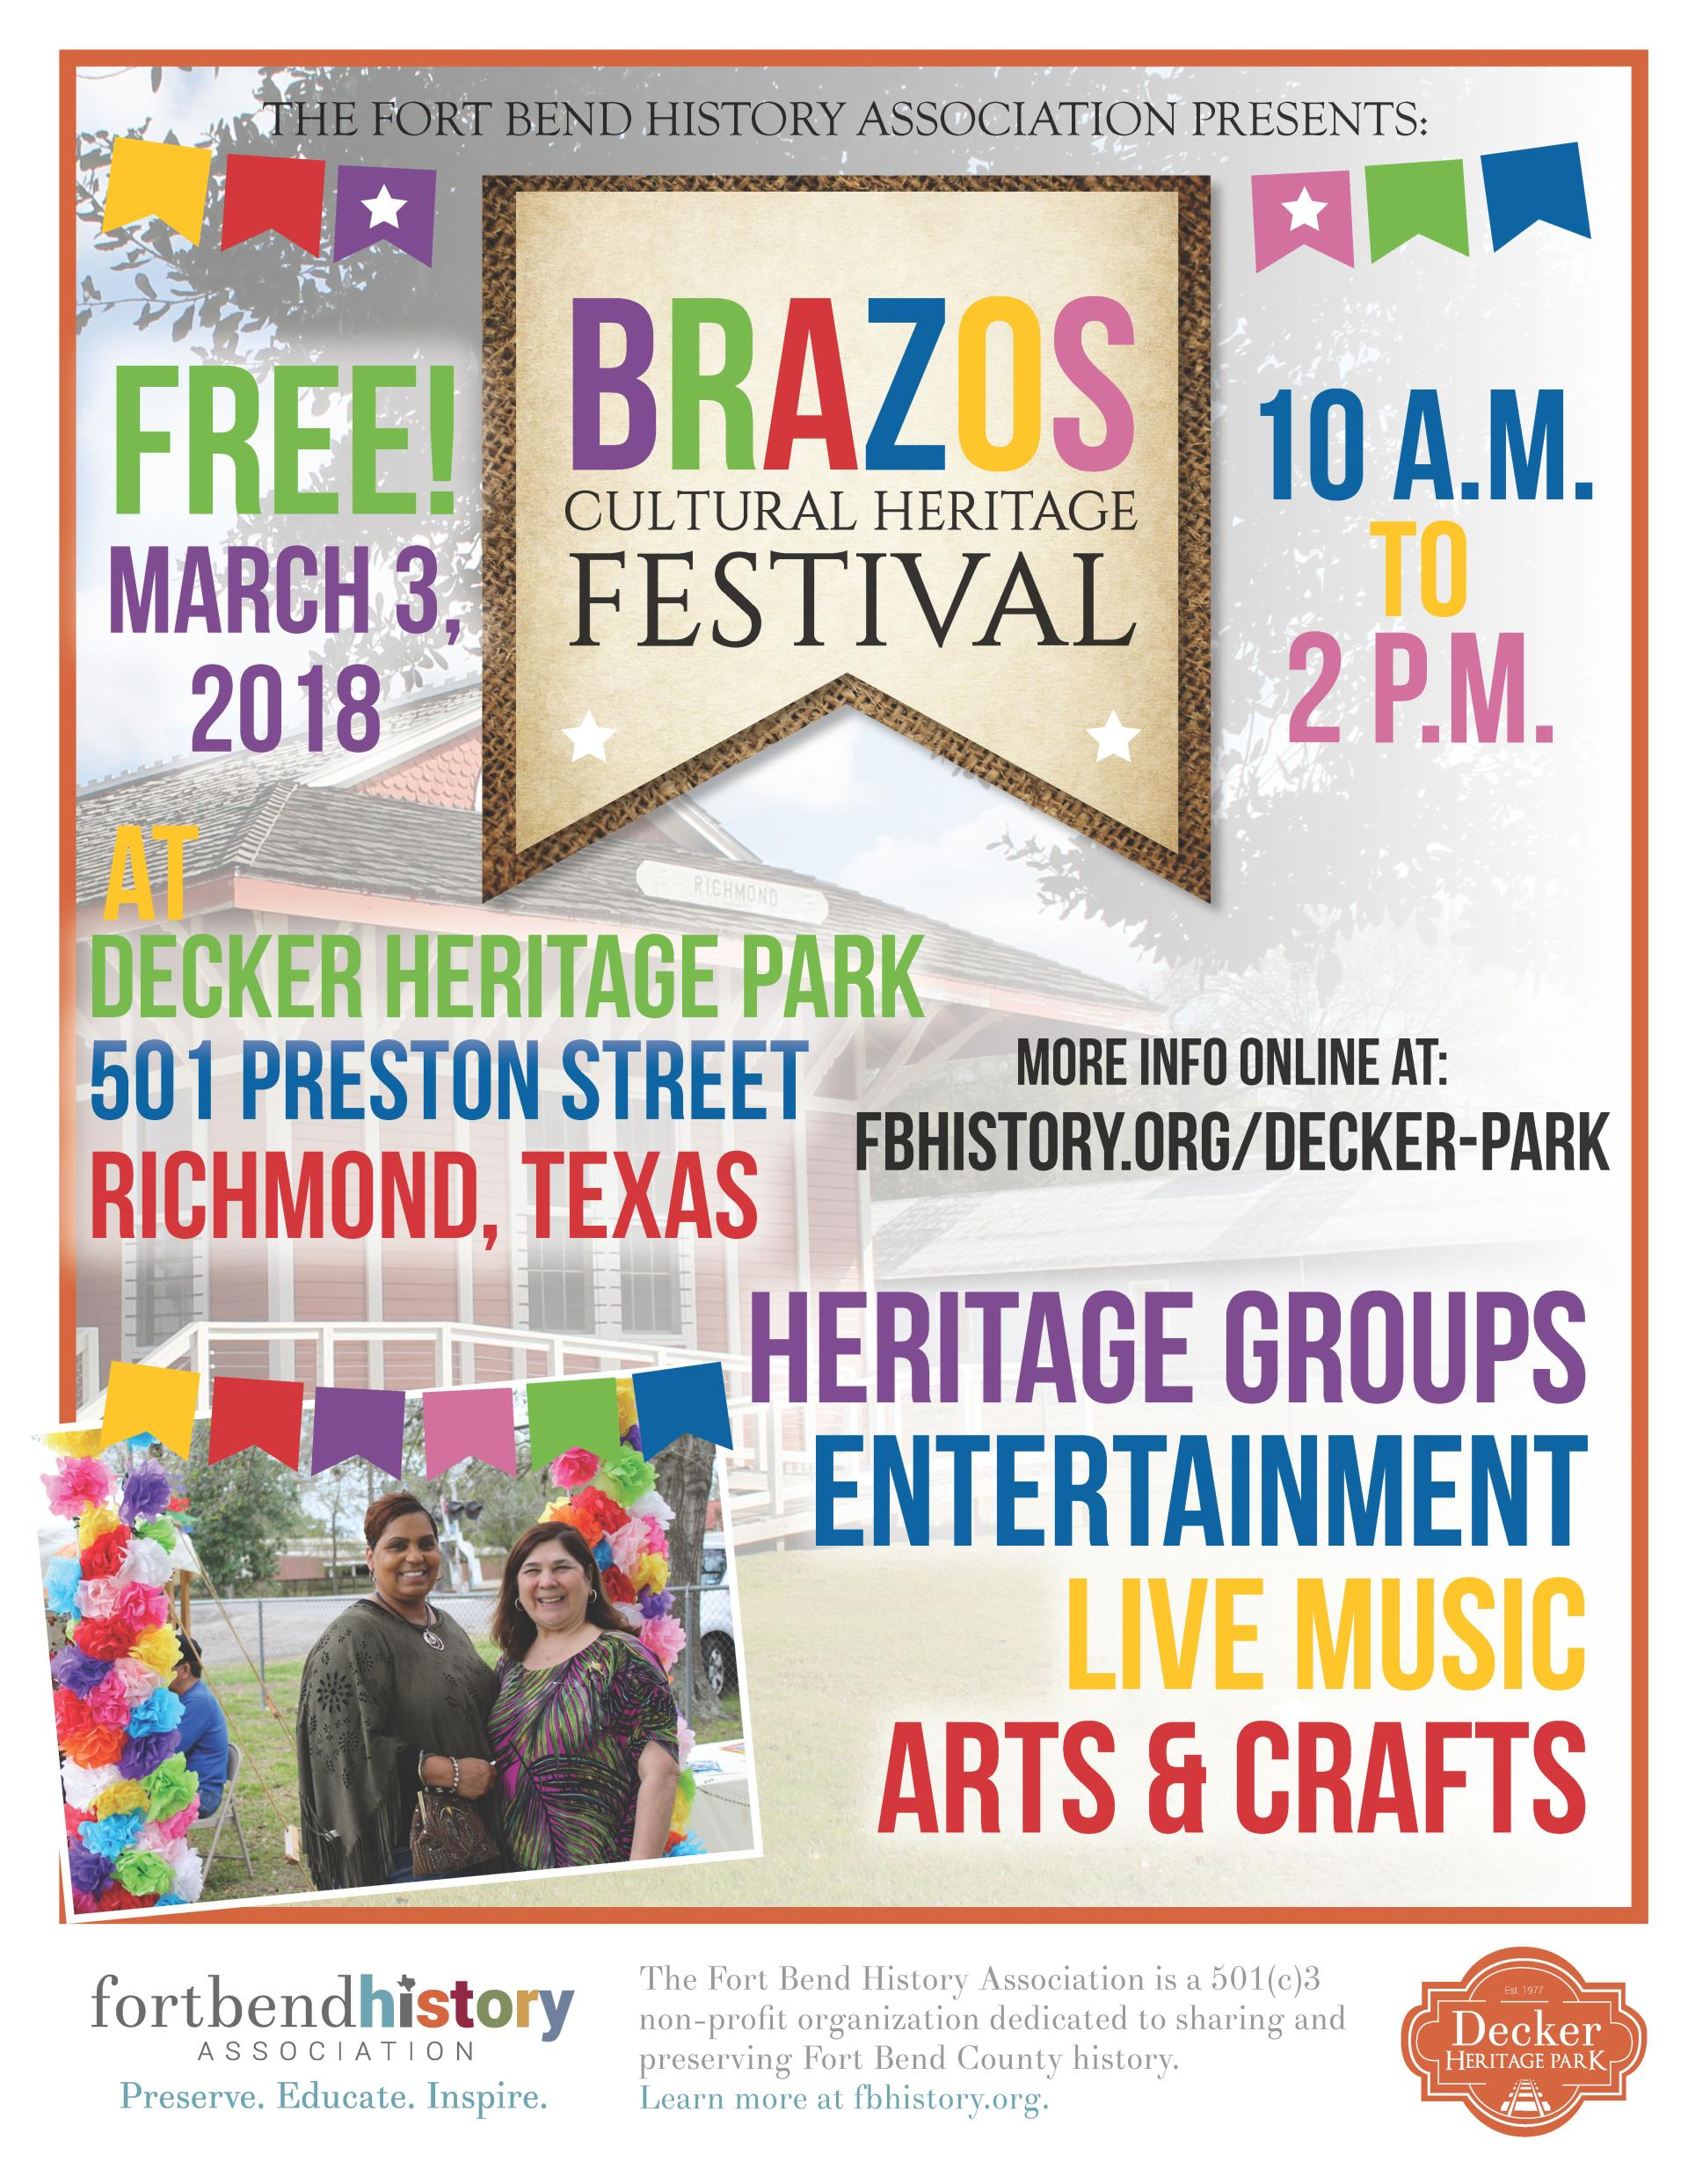 2018 Brazos Cultural Heritage Festival flyer